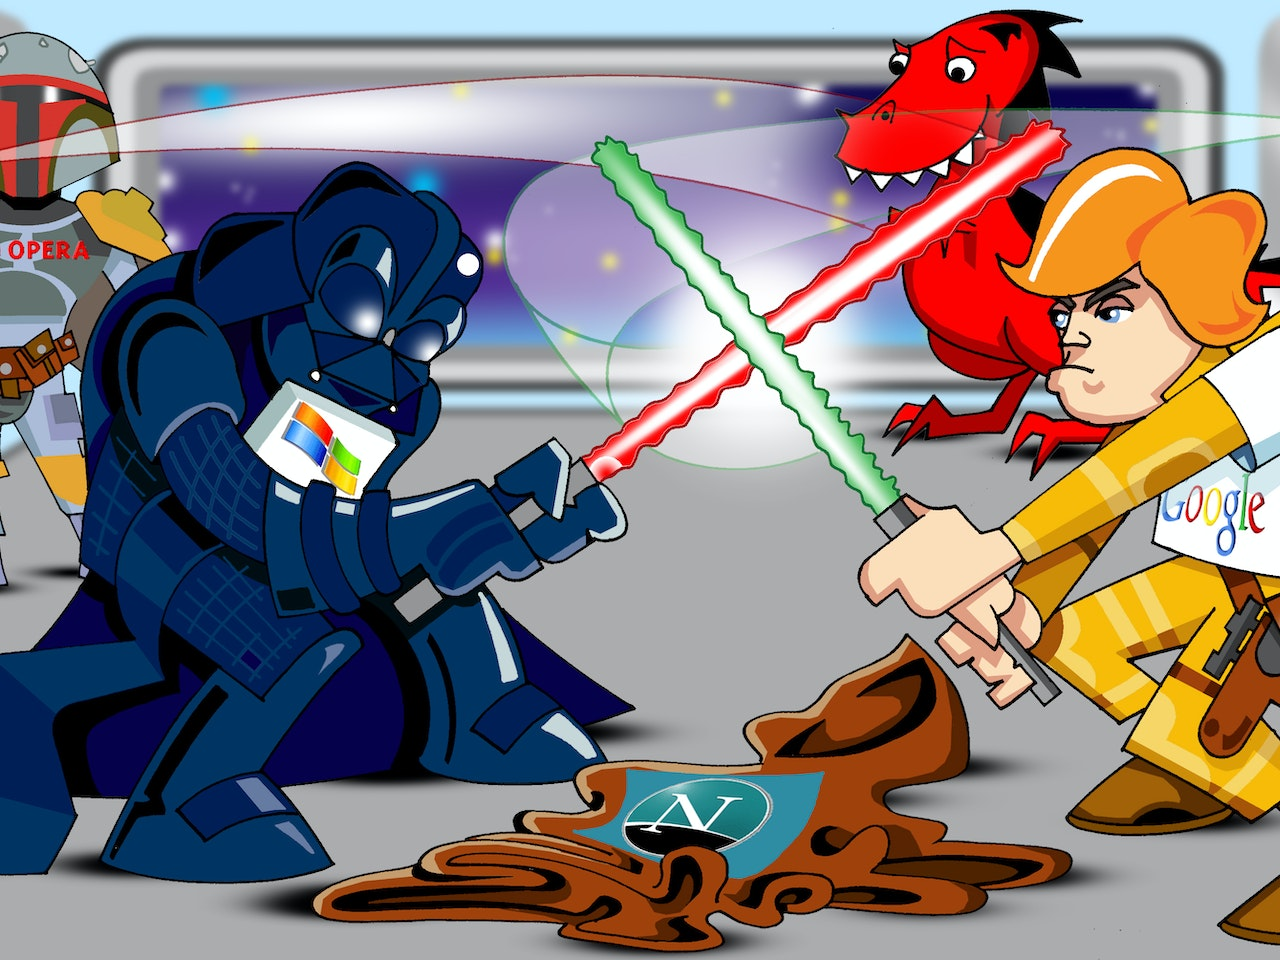 science fiction funny happy humorous comical colourful graphic cartoon star wars darth vader ben kenobi  luke skywalker boba fett  lightsabre fight